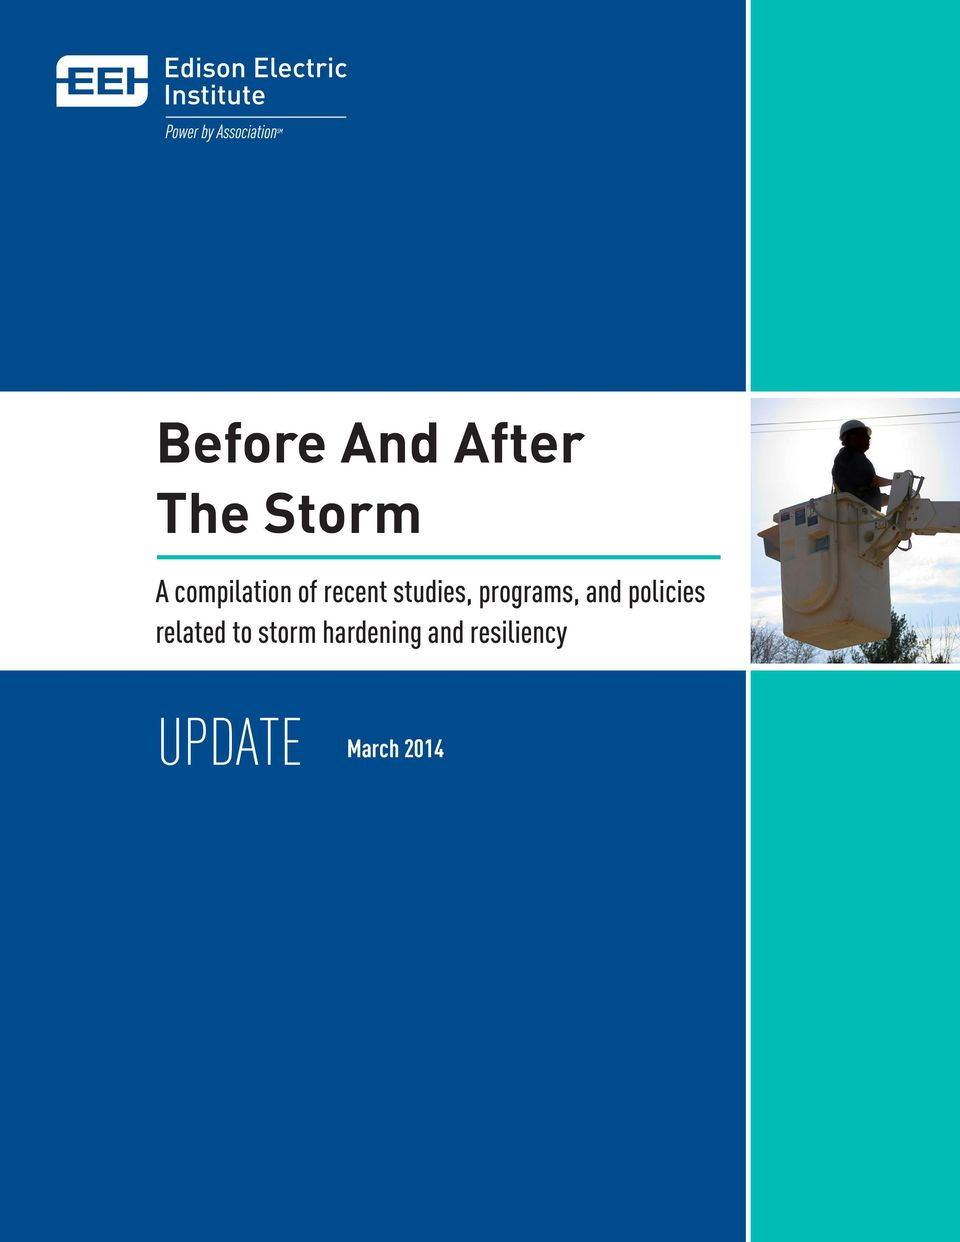 programs, and policies related to